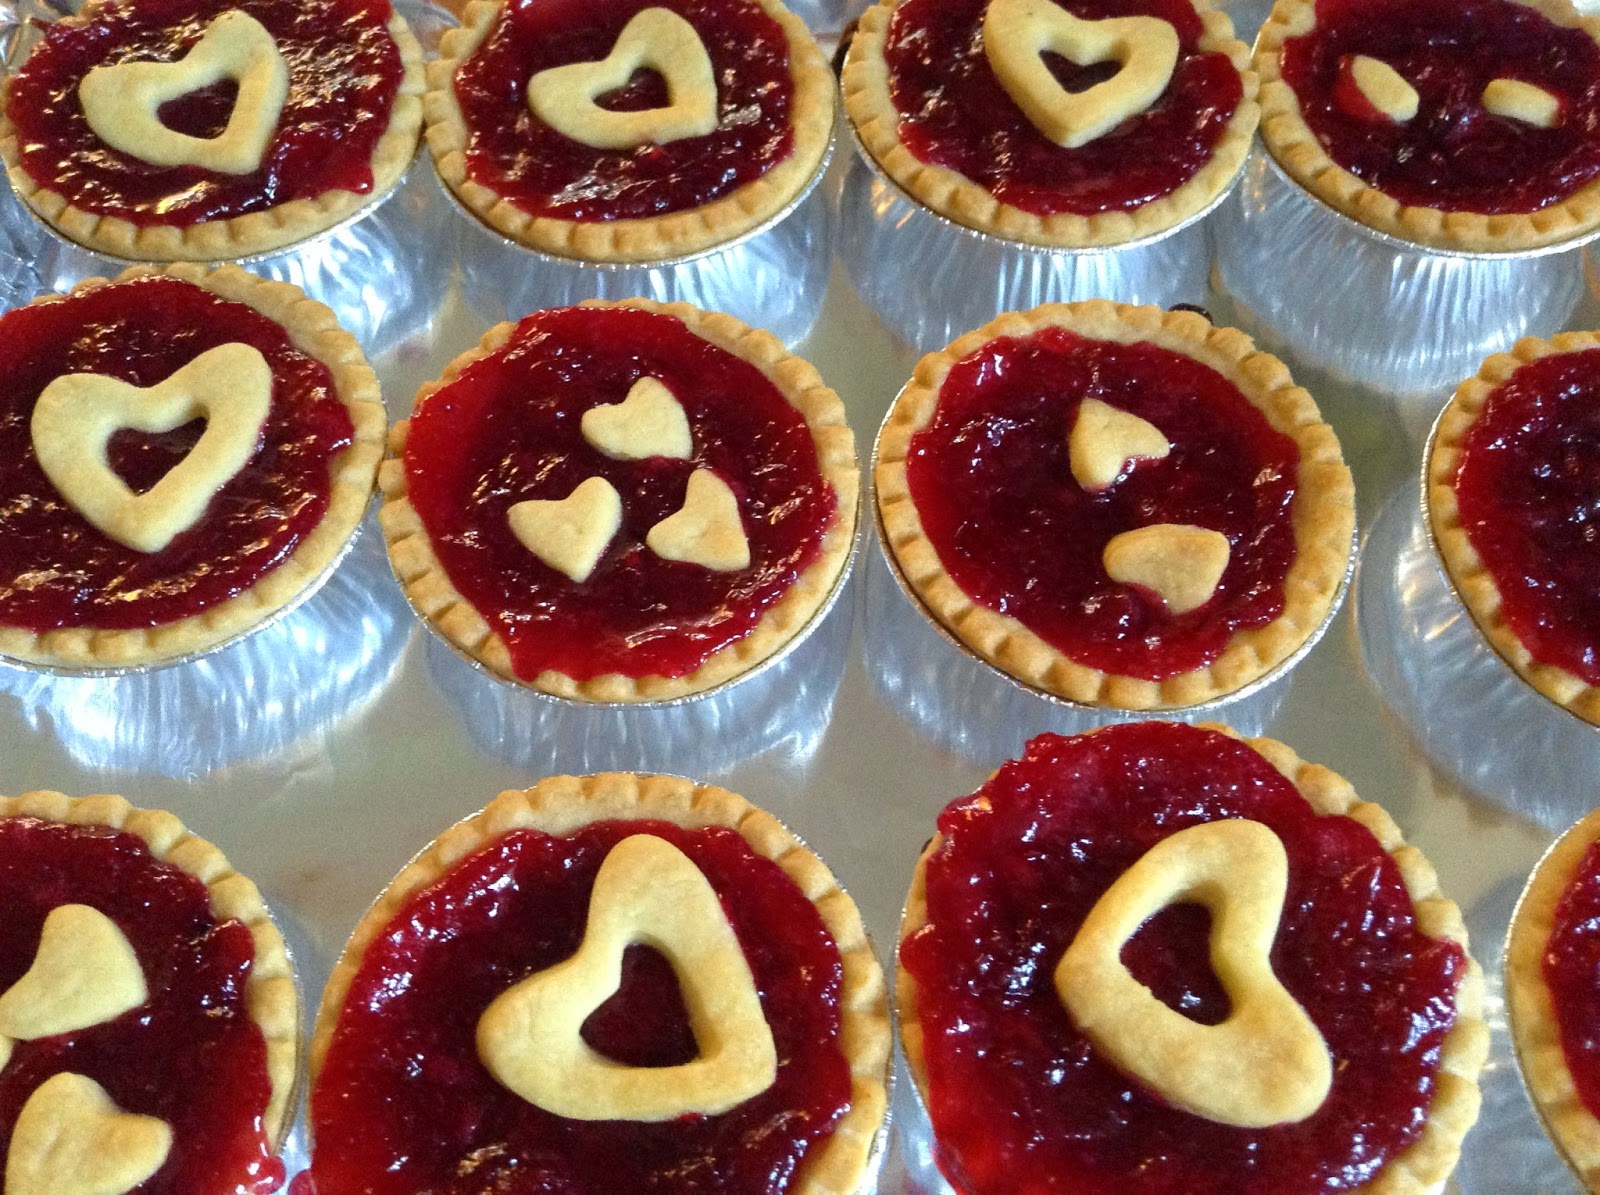 Cranberry Tarts out of the oven